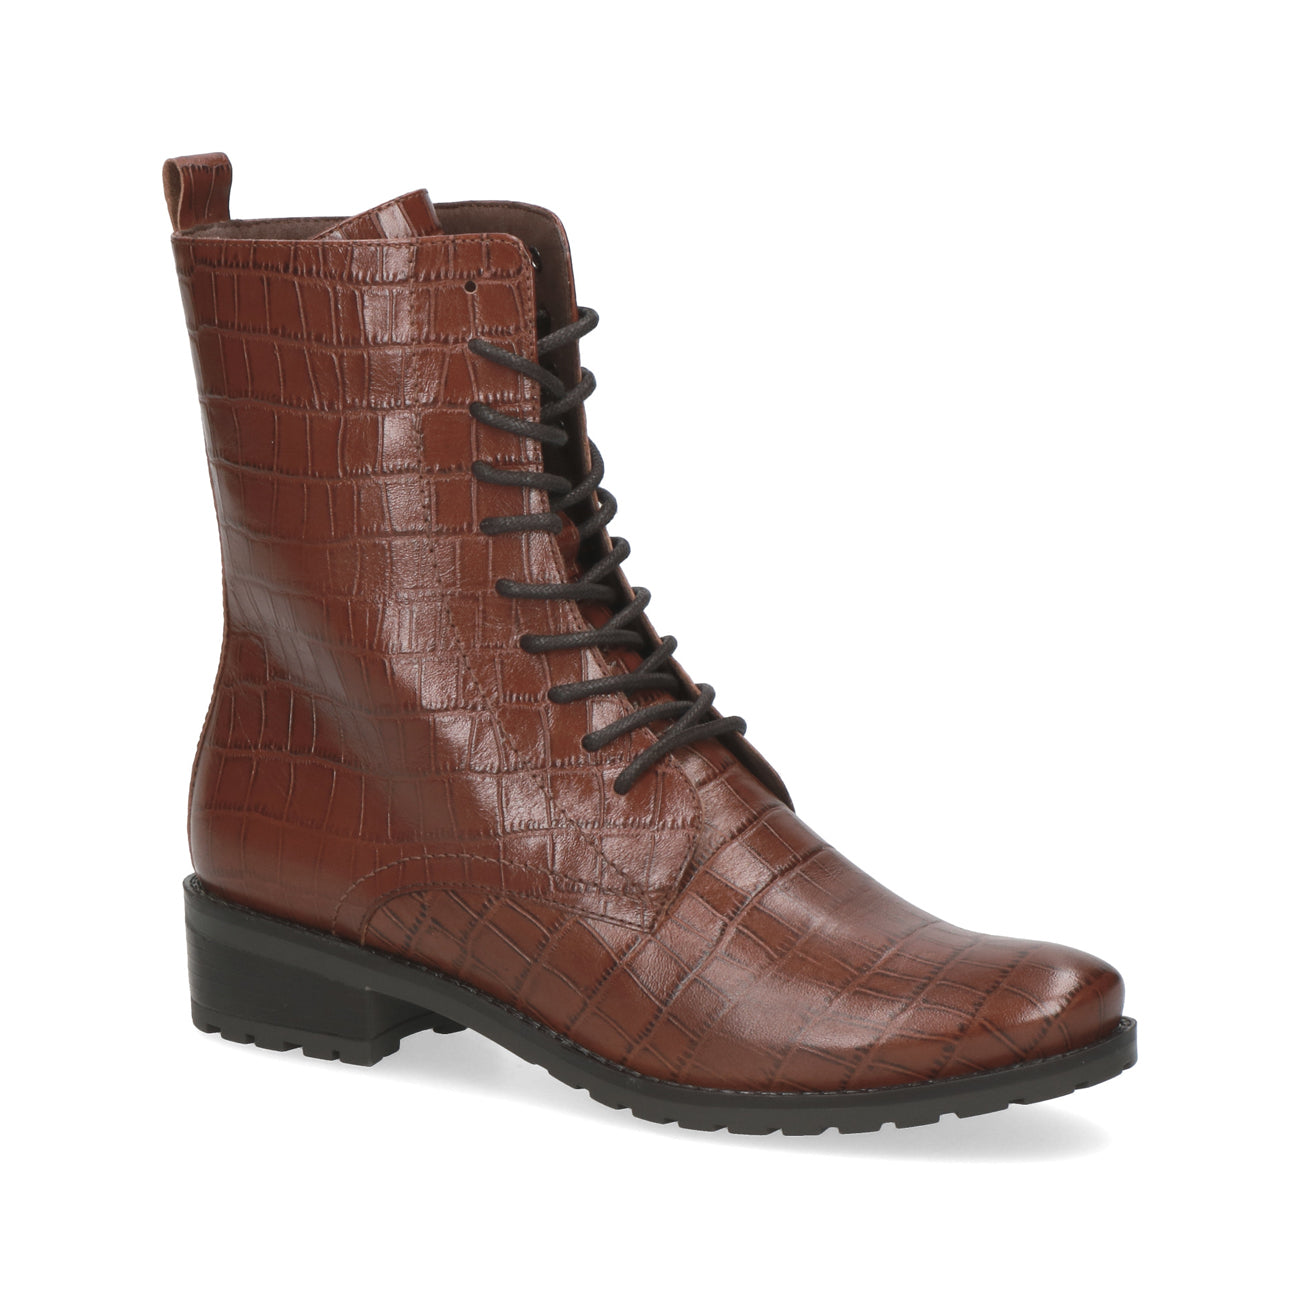 Caprice Lace Up Boot | 25101 | Cognac Croc